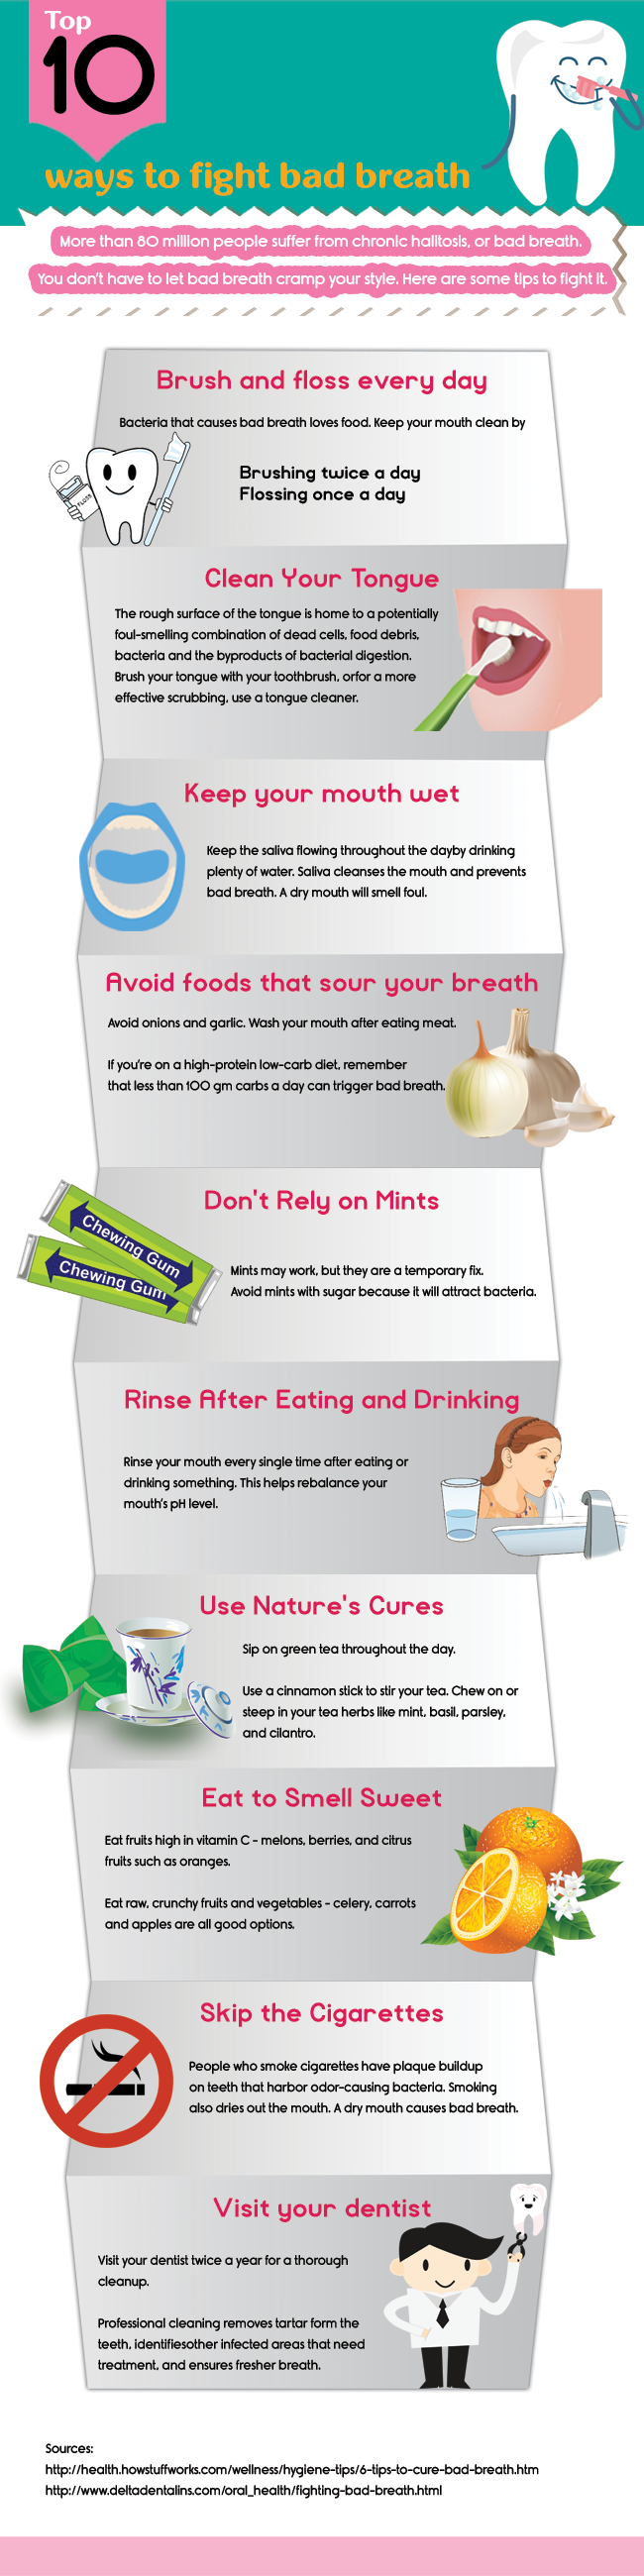 Top 10 ways to fight bad breath